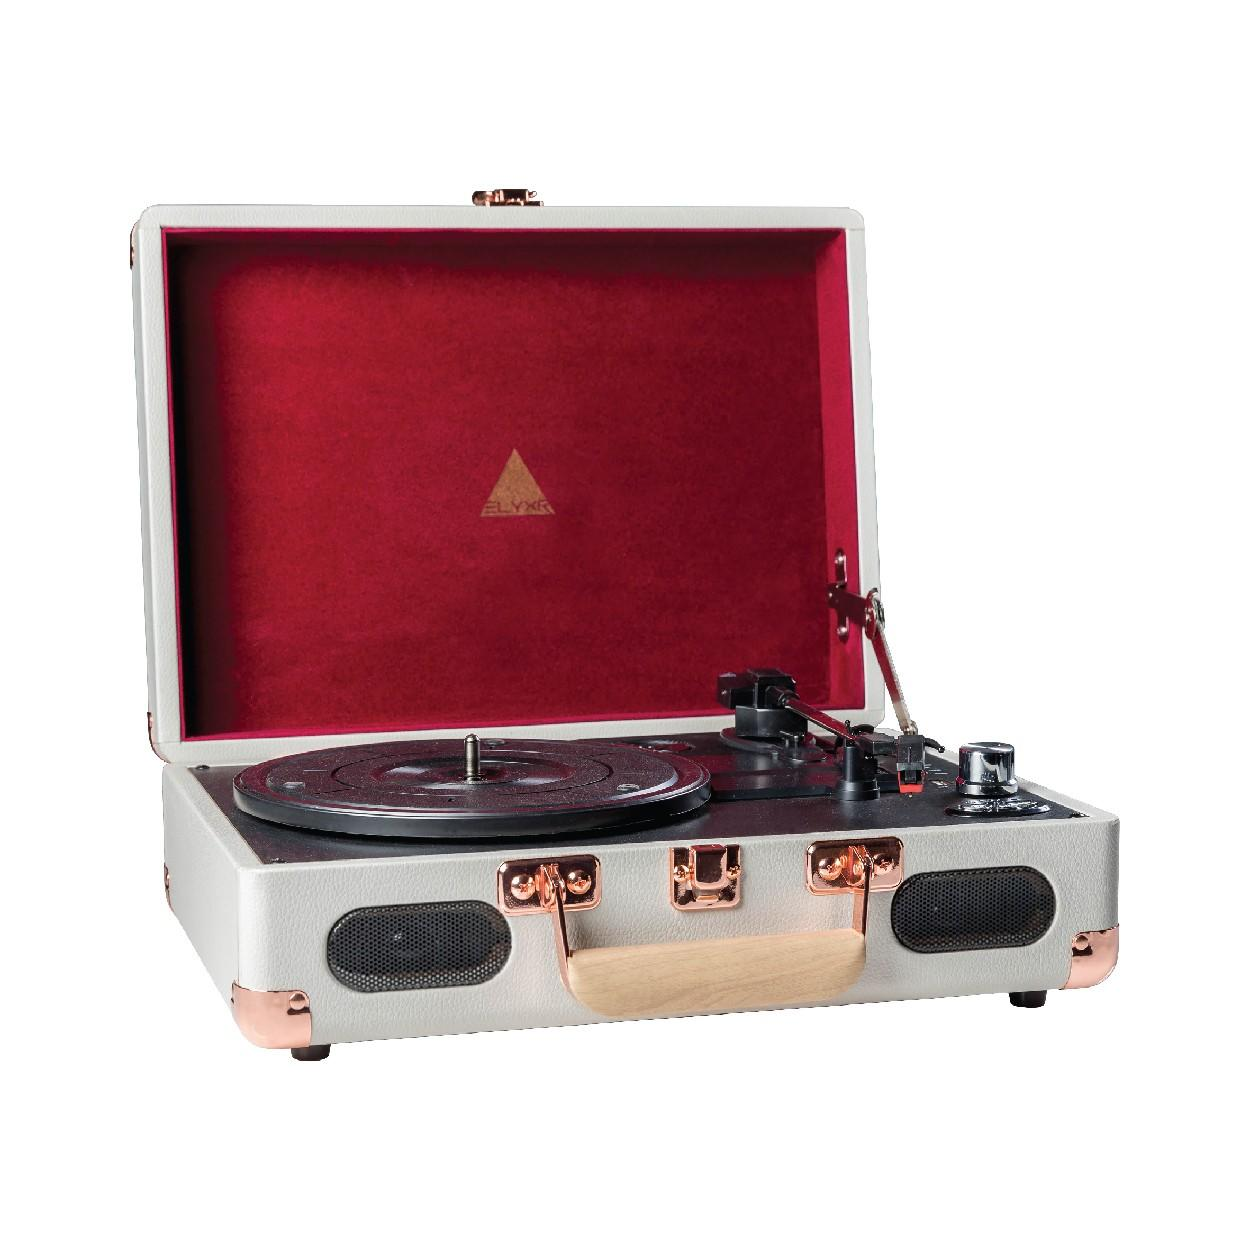 Elyxr Revolution Vinyl Player Grey & Burgundy